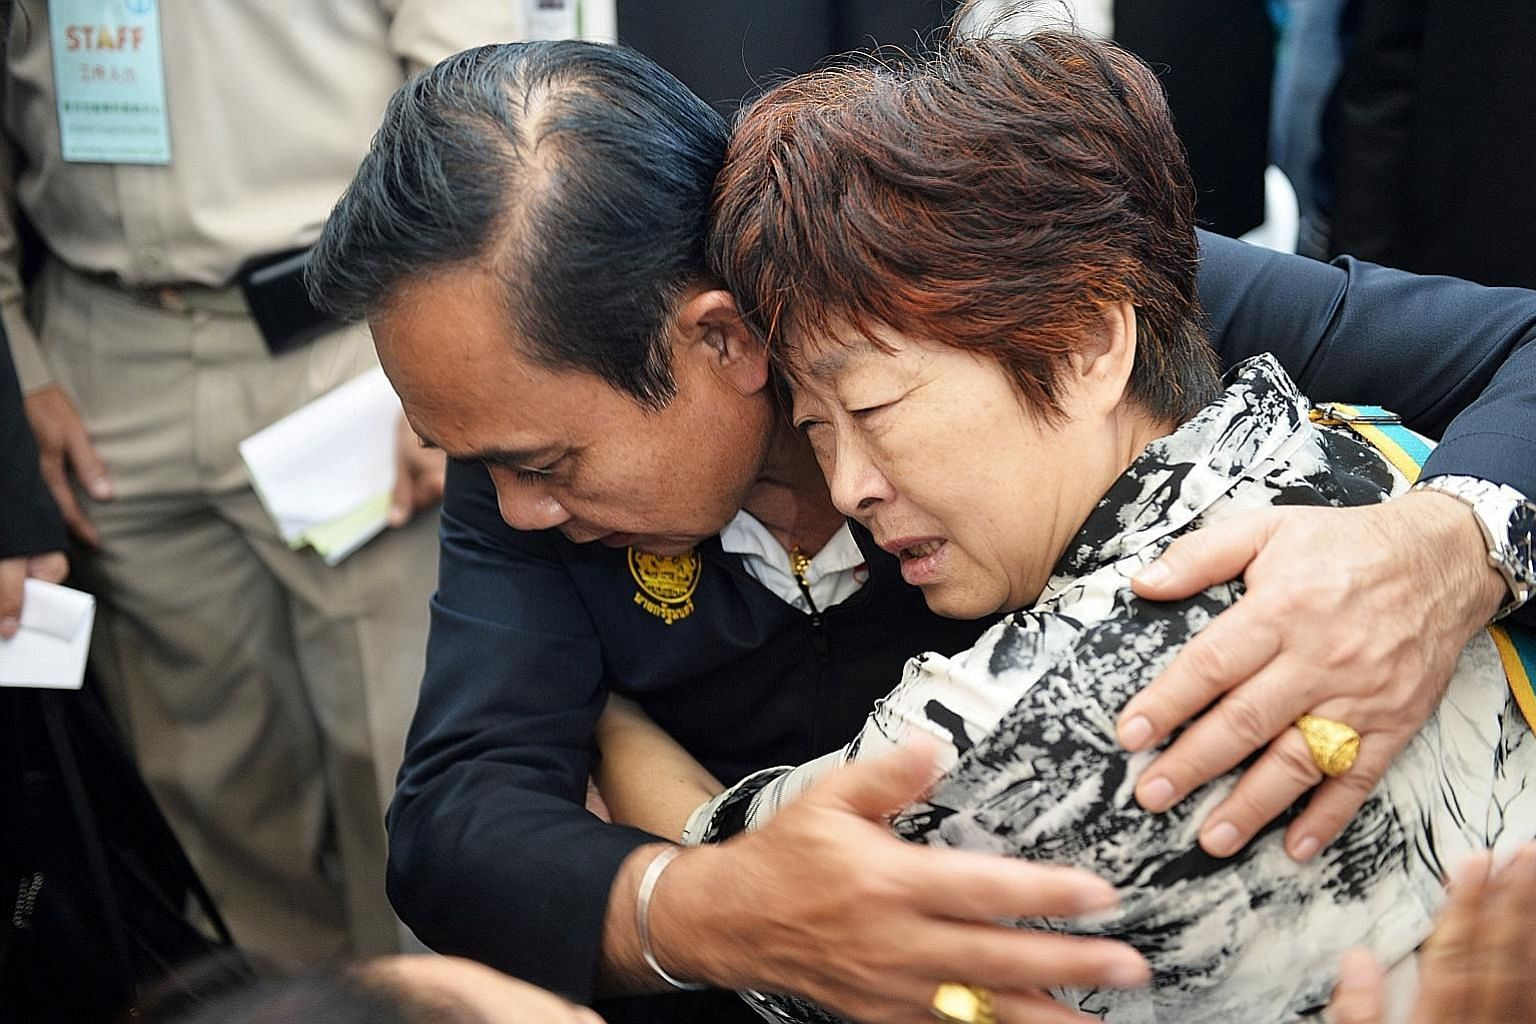 Thai Prime Minister Prayut Chan-o-cha comforting the relative of a victim of the Phuket boat accident.